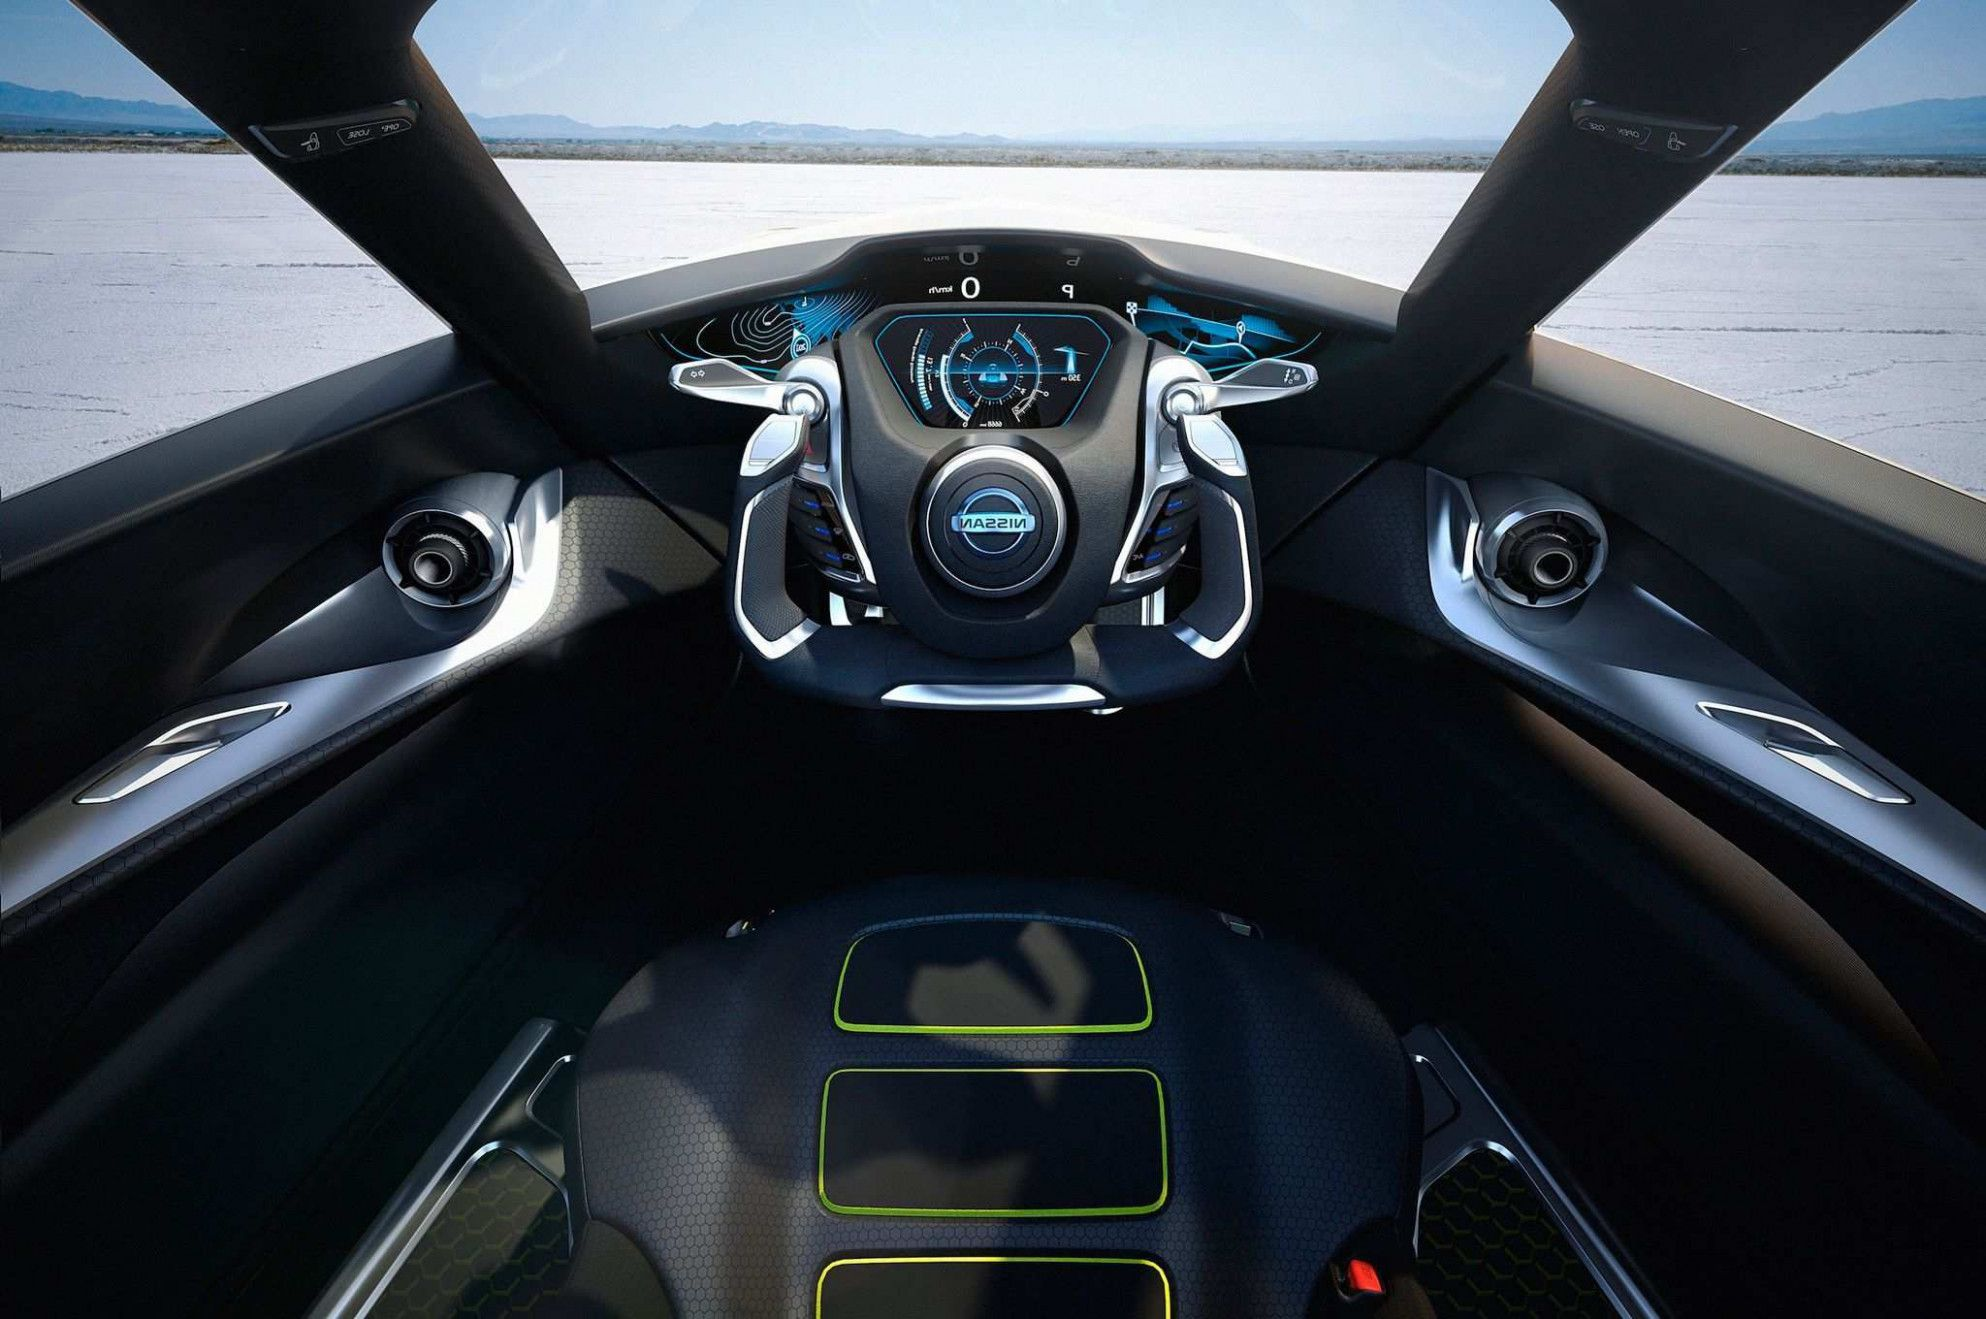 All You Need To Know About Nissan Concept 2020 Interior Electric Car Concept Concept Cars Concept Car Design